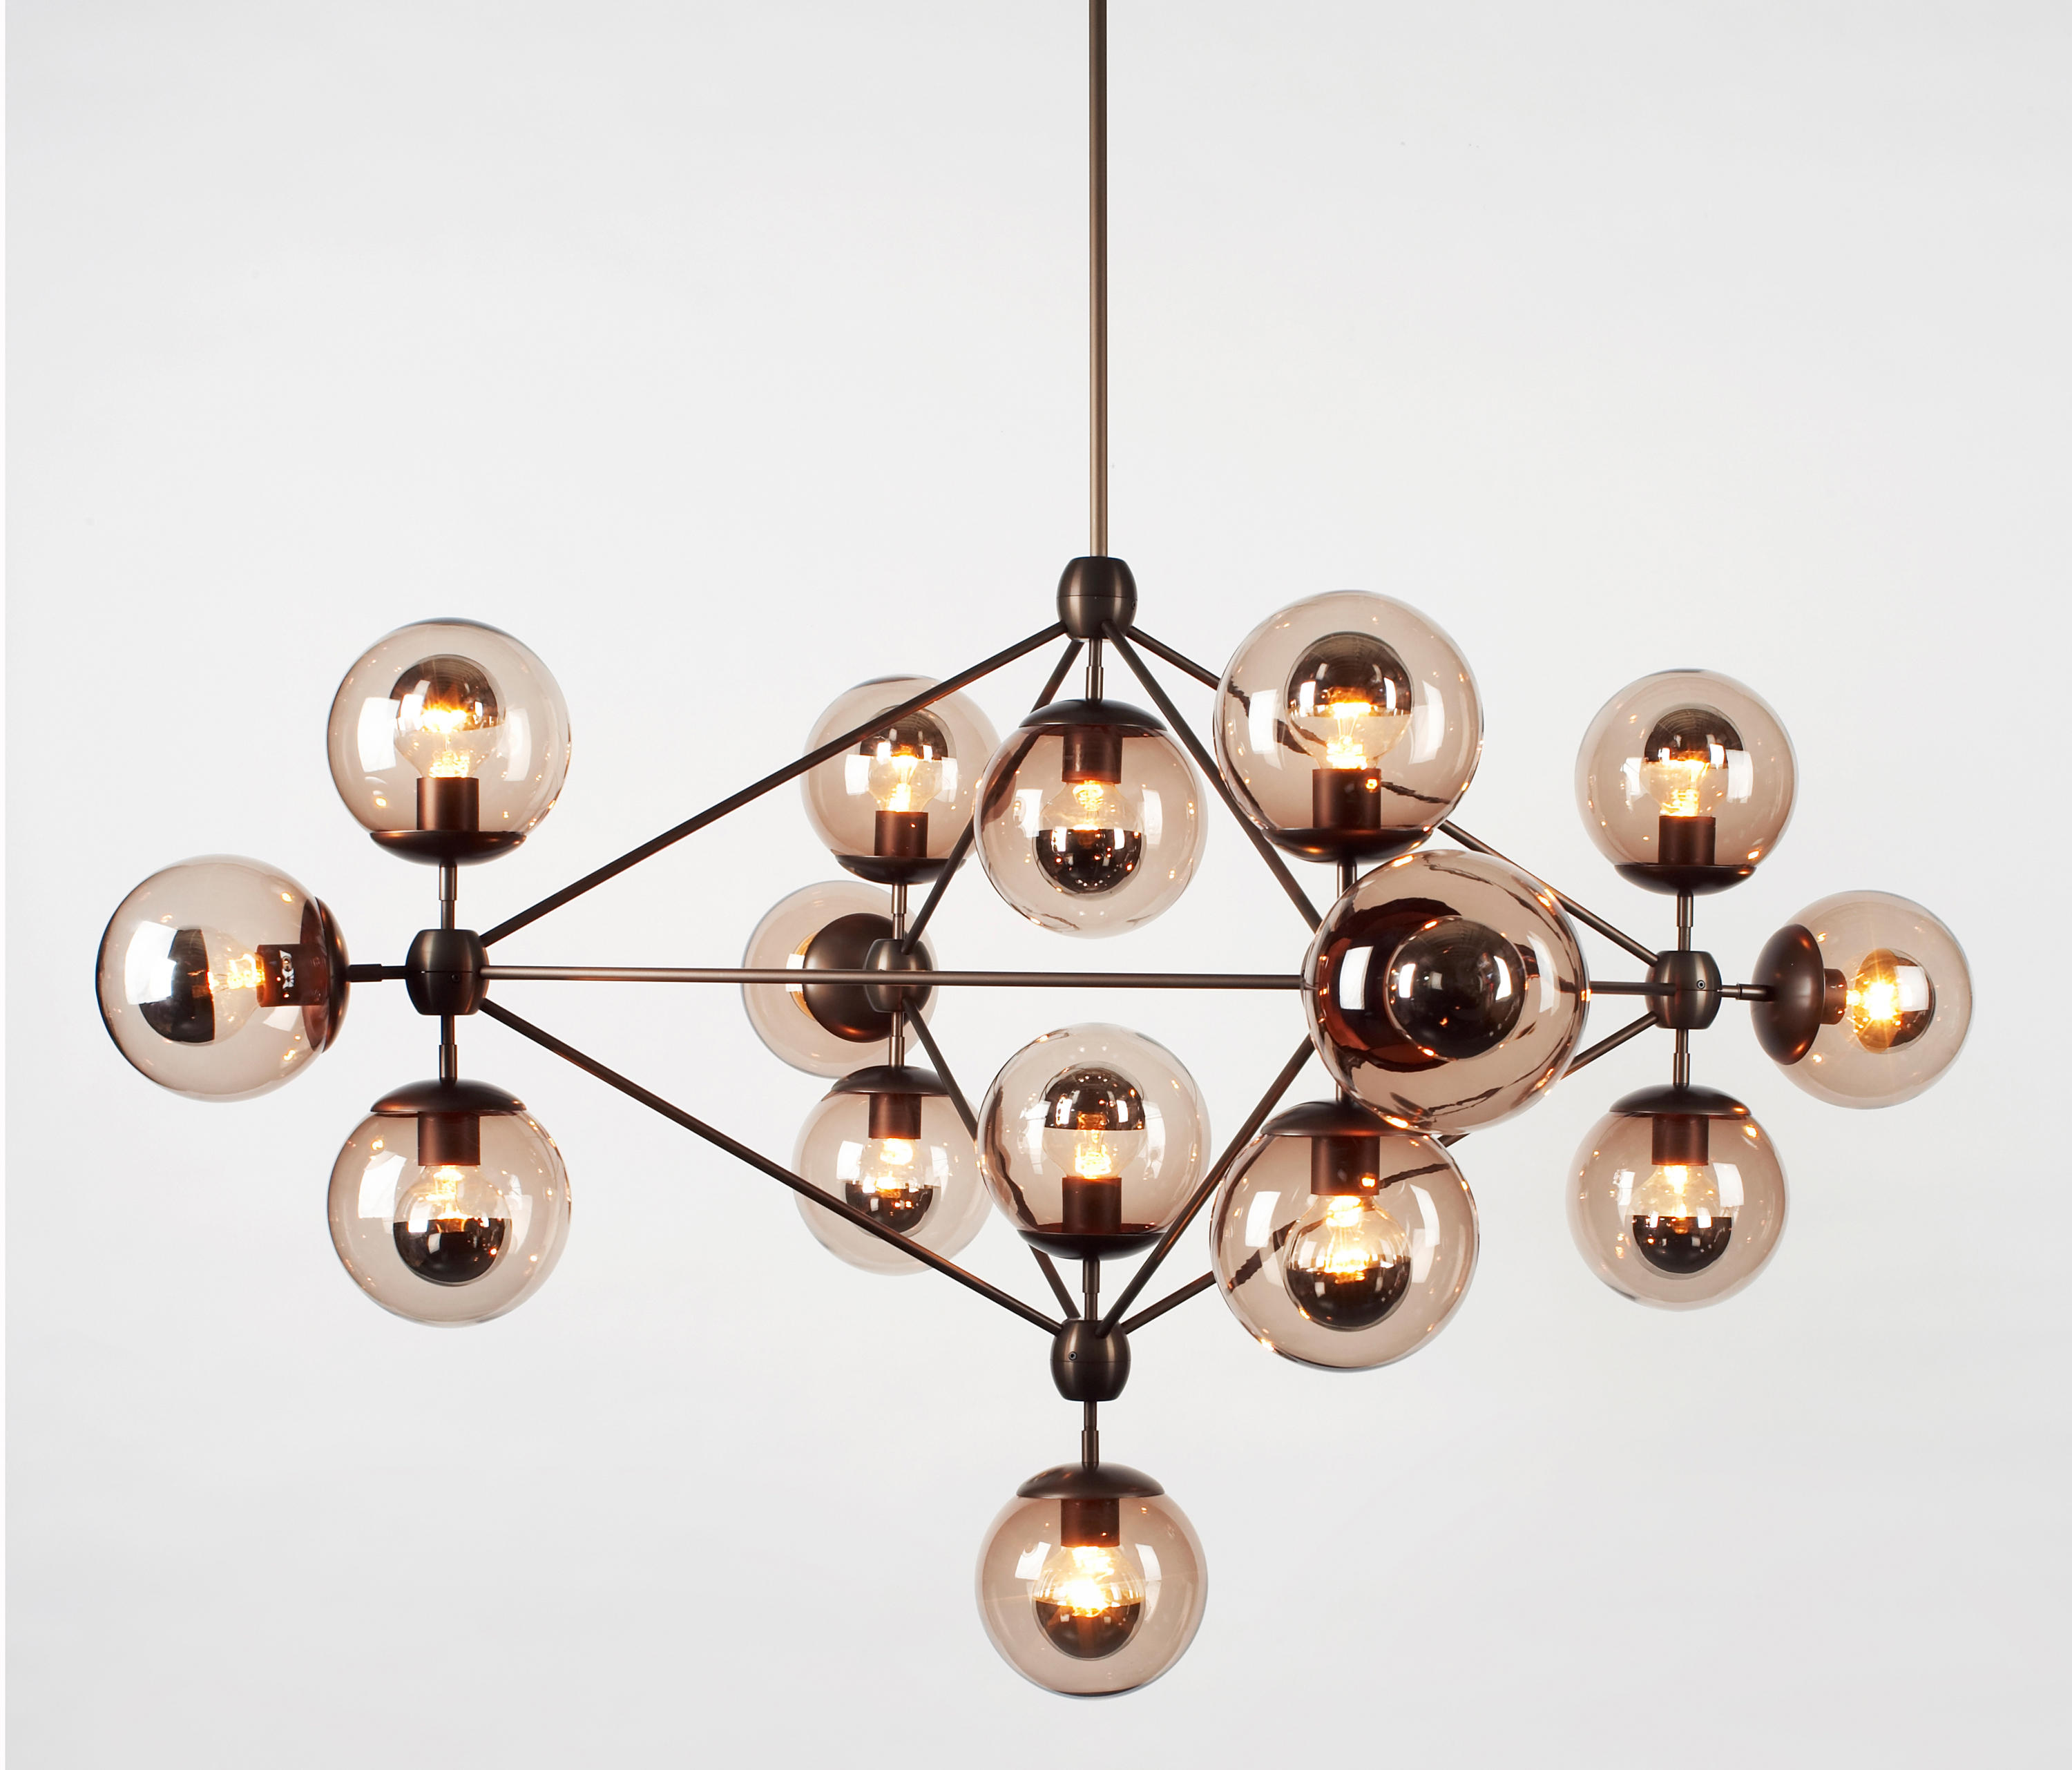 modo chandelier 15 globes bronze smoke general lighting from roll hill architonic. Black Bedroom Furniture Sets. Home Design Ideas